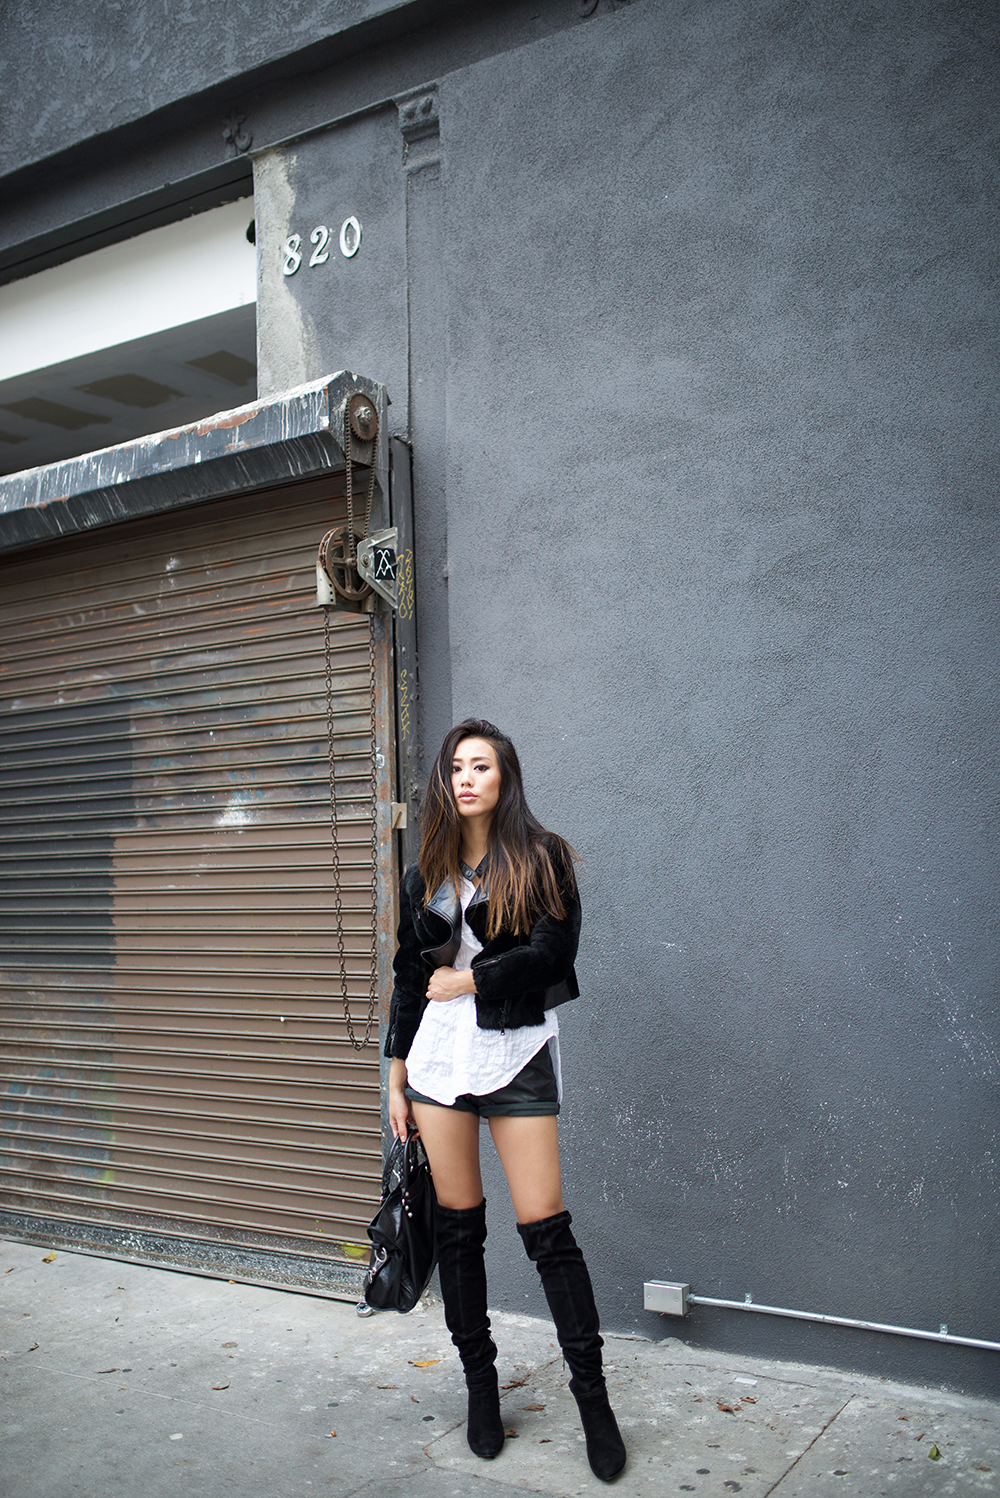 Jenny Ong wears leather mini shorts with black over the knee boots. Jacket: Phillip Lim, Top: Lou & Grey top, Shorts: JBrand, Boots: Ted & Muffy, Bag: Balenciaga.